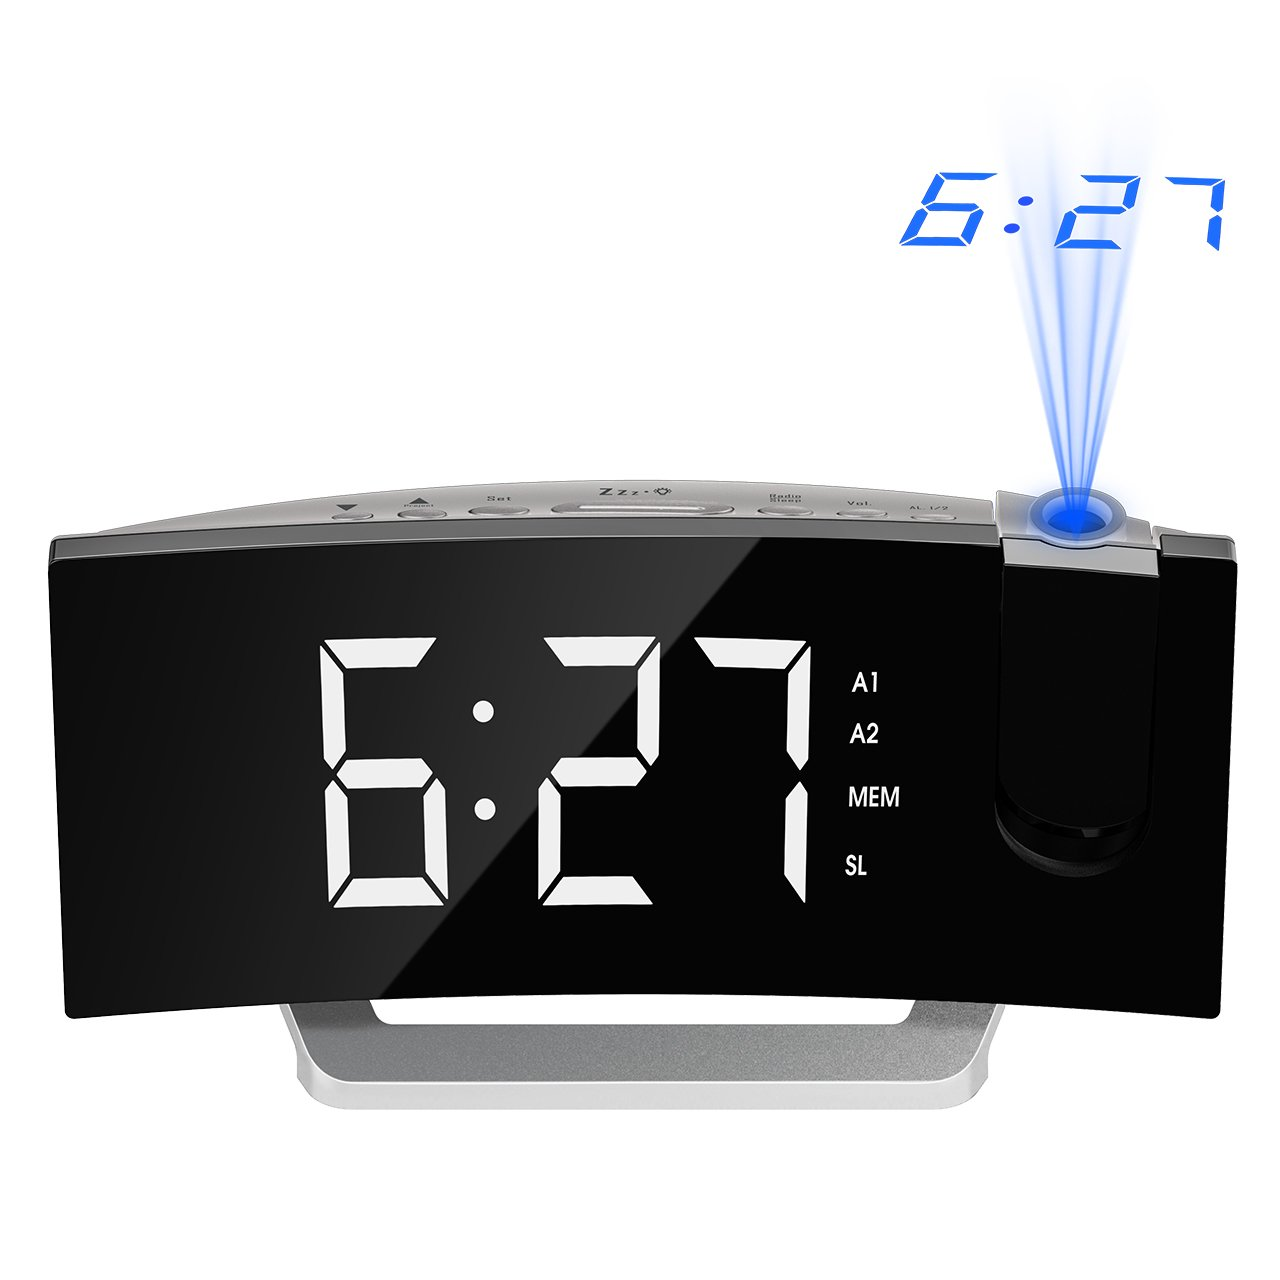 Mpow [GEN-3 Projection Alarm Clock, Curved-Screen Projection Clocks with 5'' Dimmer LED Display, Digital Clock for Bedroom, Dual Alarms with 30 Minute Ring Time, 12/24 Hour, Backup for Clock Setting